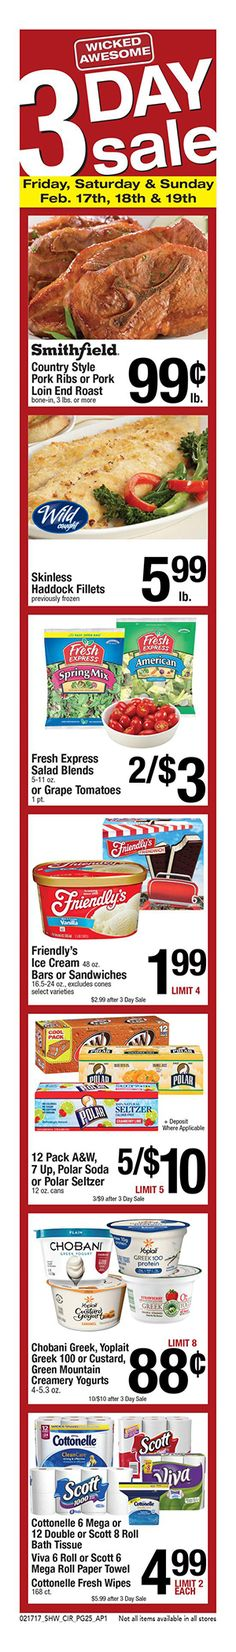 Shaws 3 Day Sale October 14 16 2016 Http Www